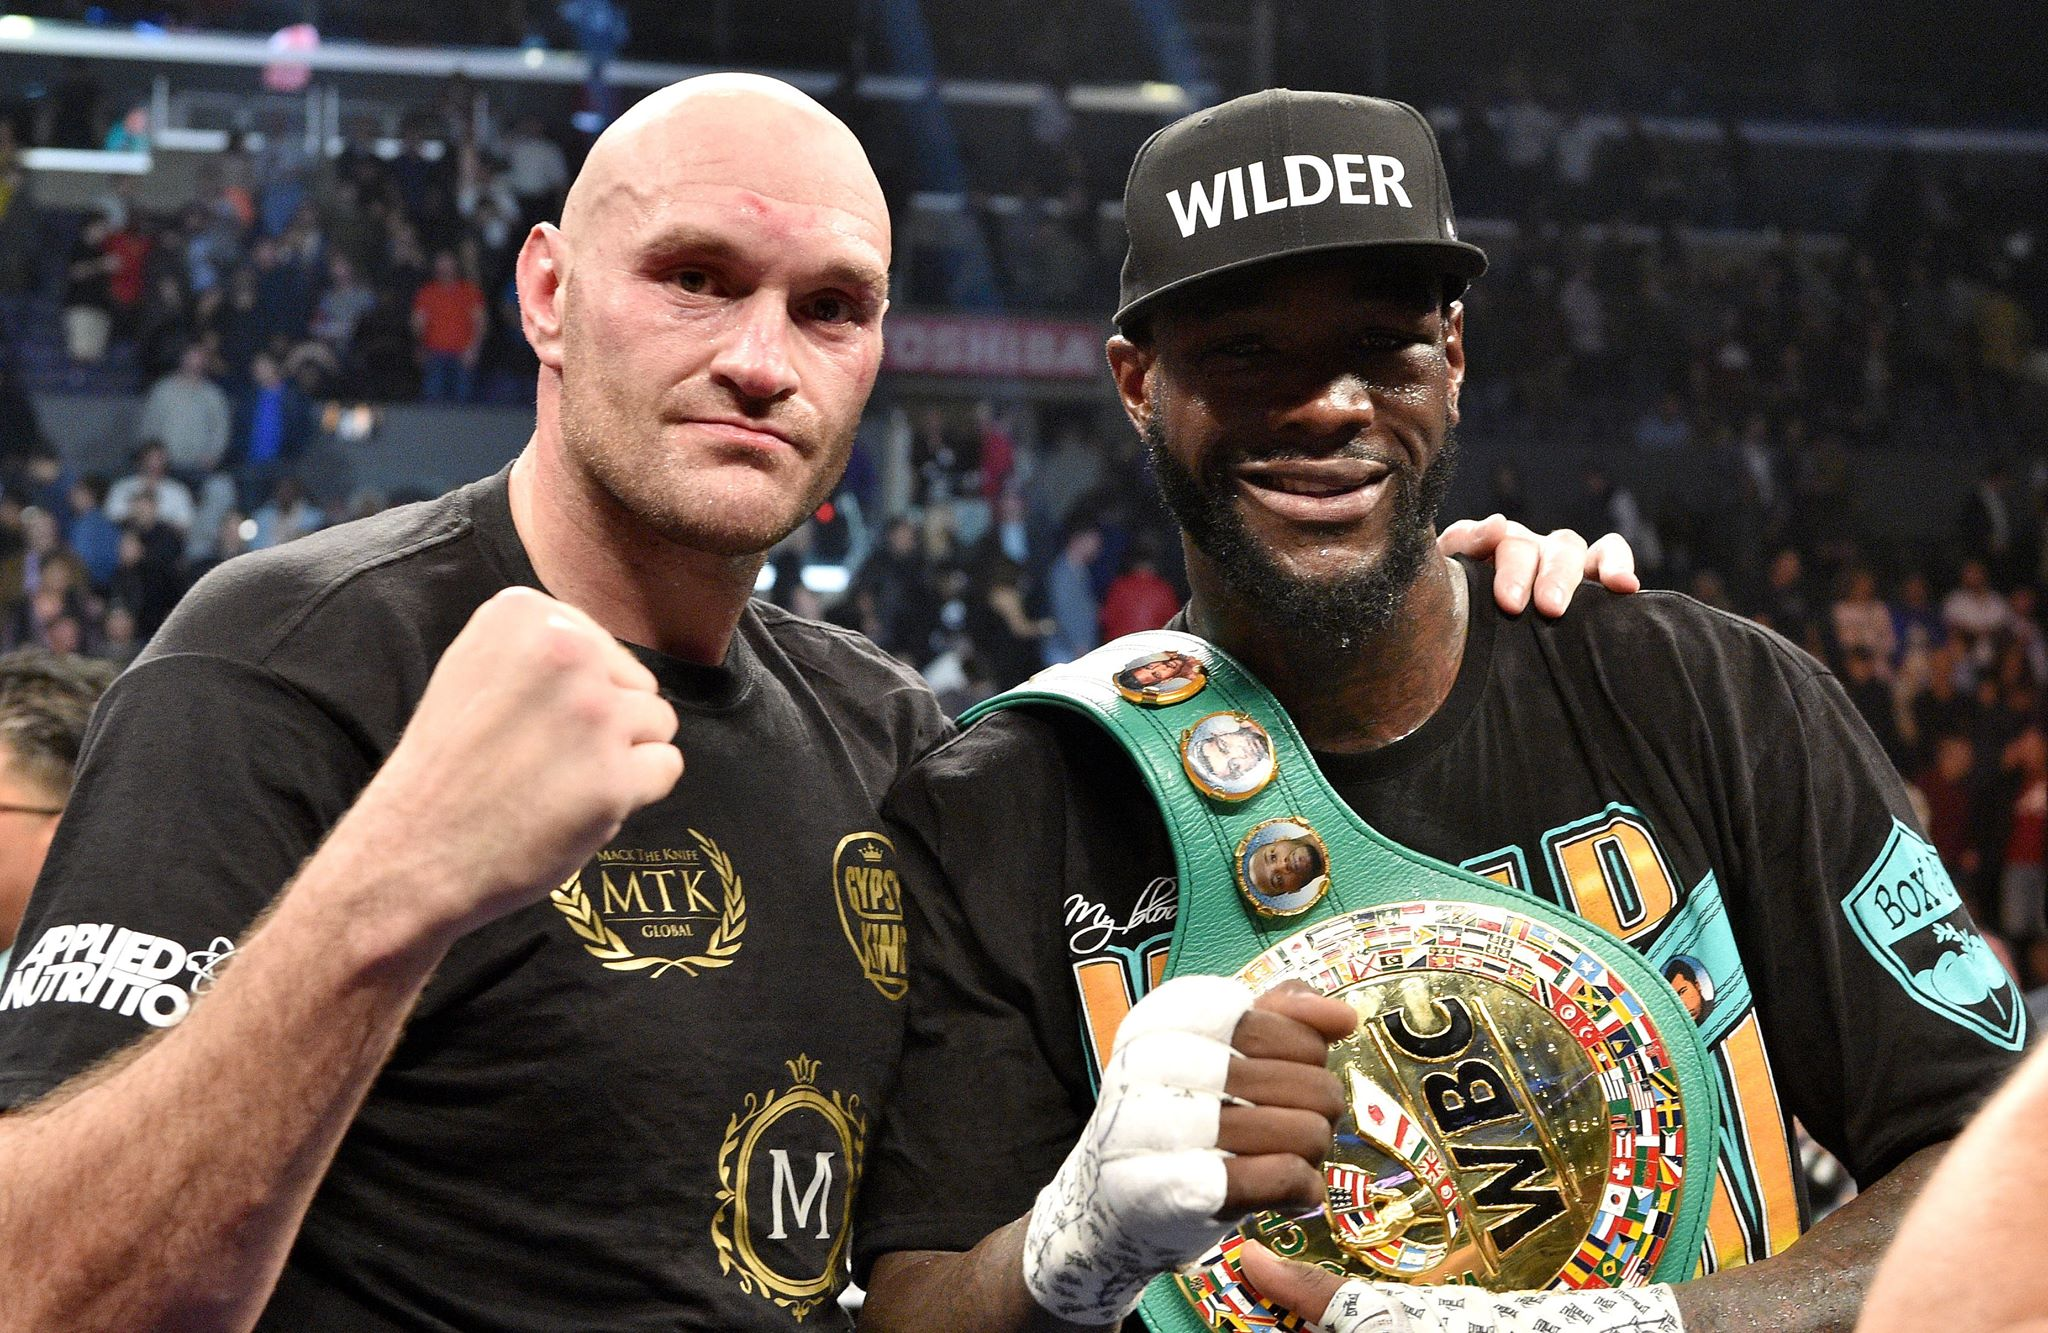 Fury's new ESPN deal casts shadow over Wilder rematch